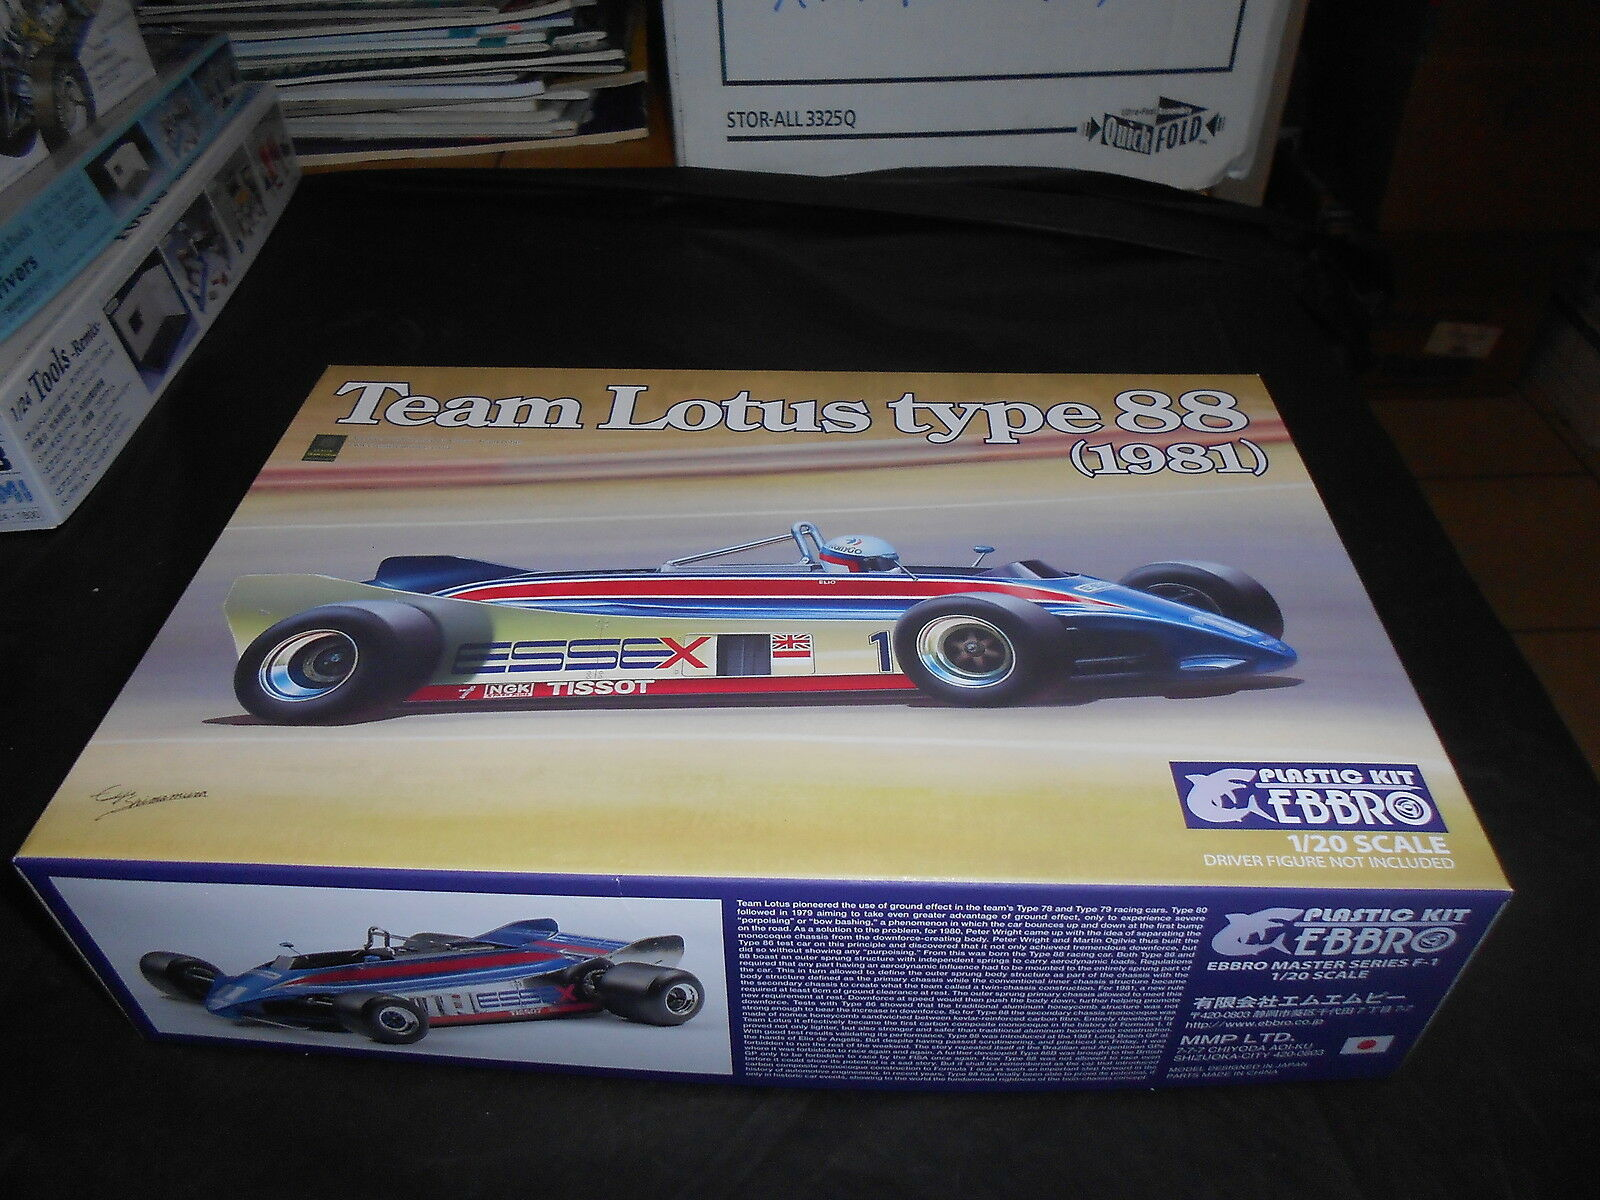 EBBRO 011, 1 20 TEAM LOTUS TYPE 88 (1981) PLASTIC MODEL KIT